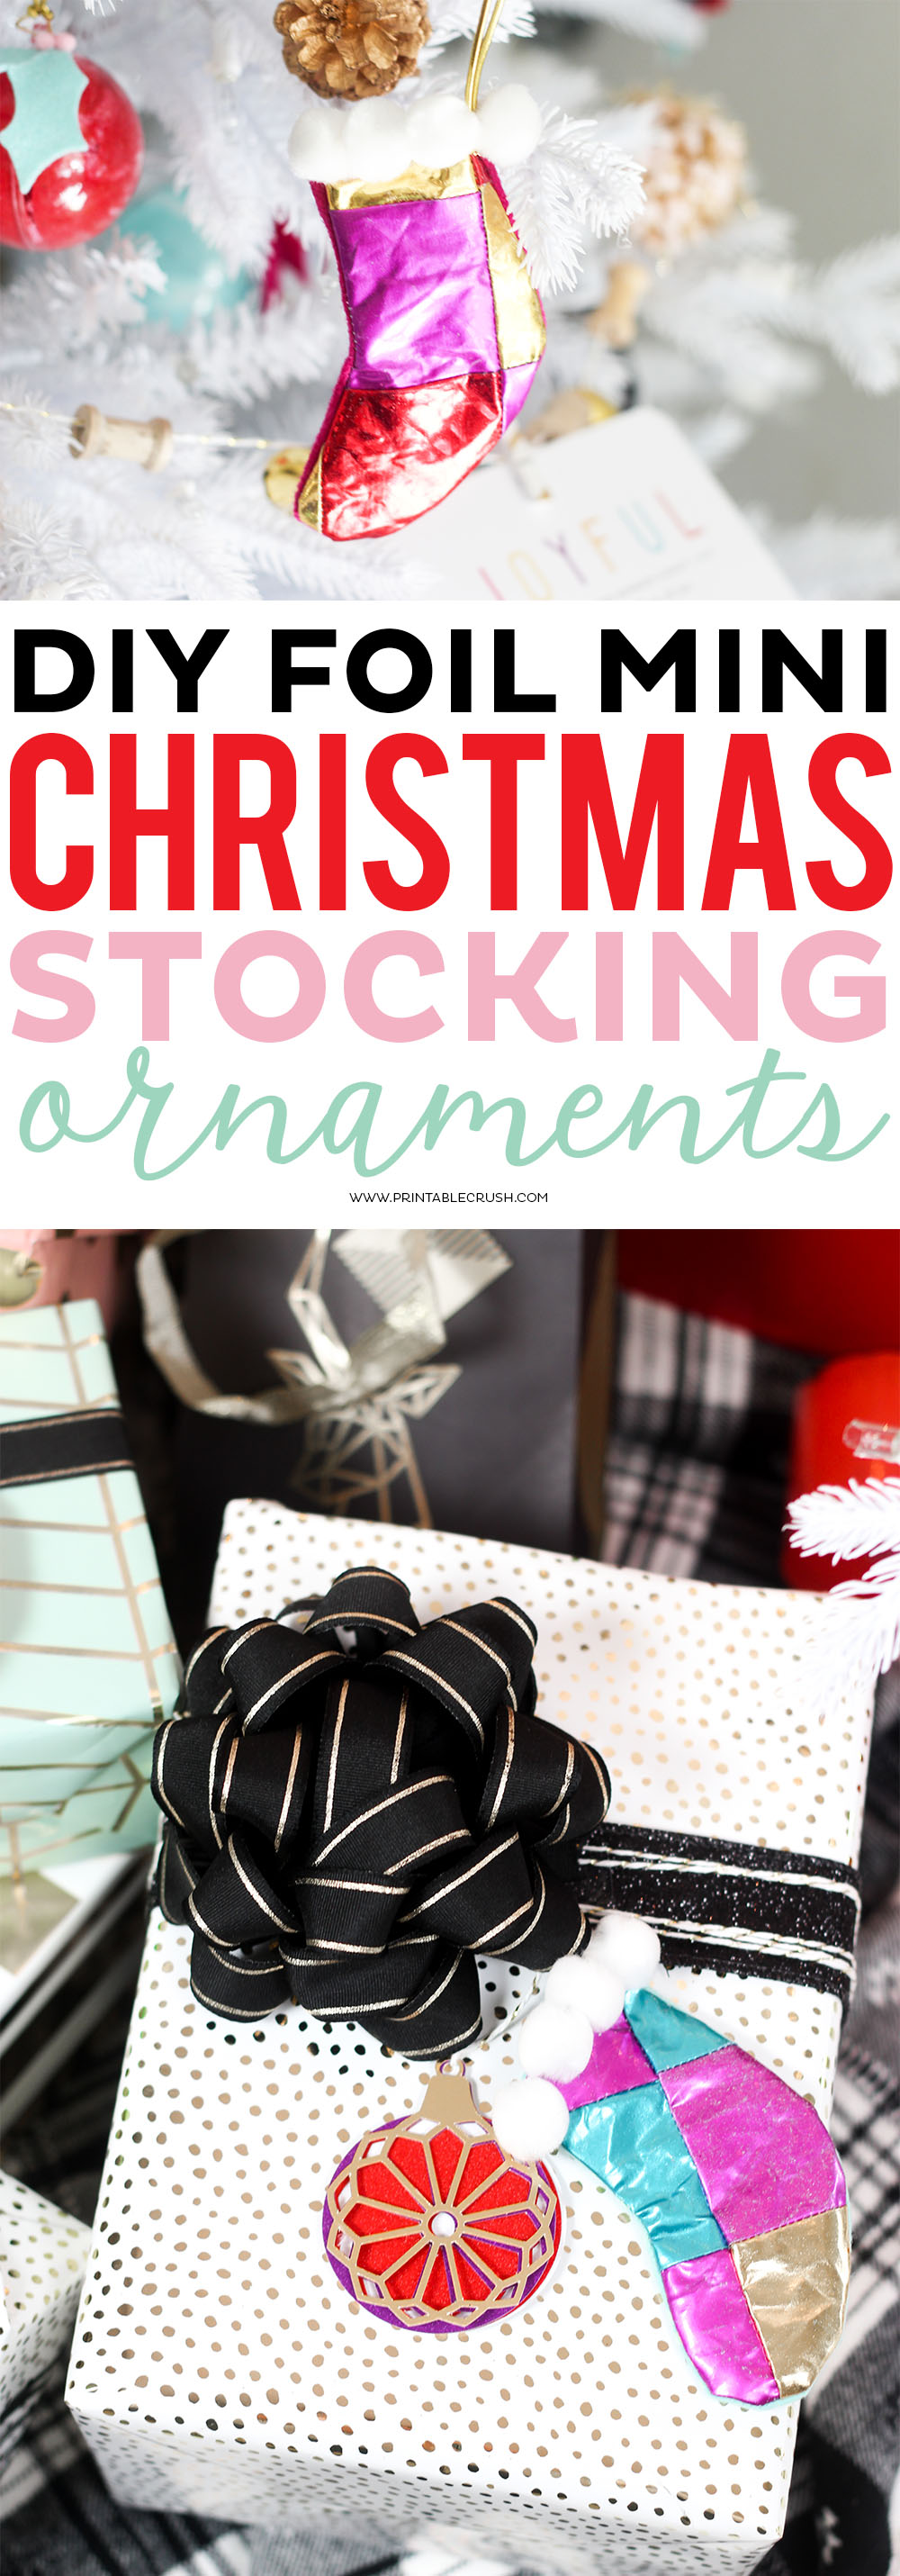 These Mini Stocking Ornaments are so cute, and they can also double as gift tags!